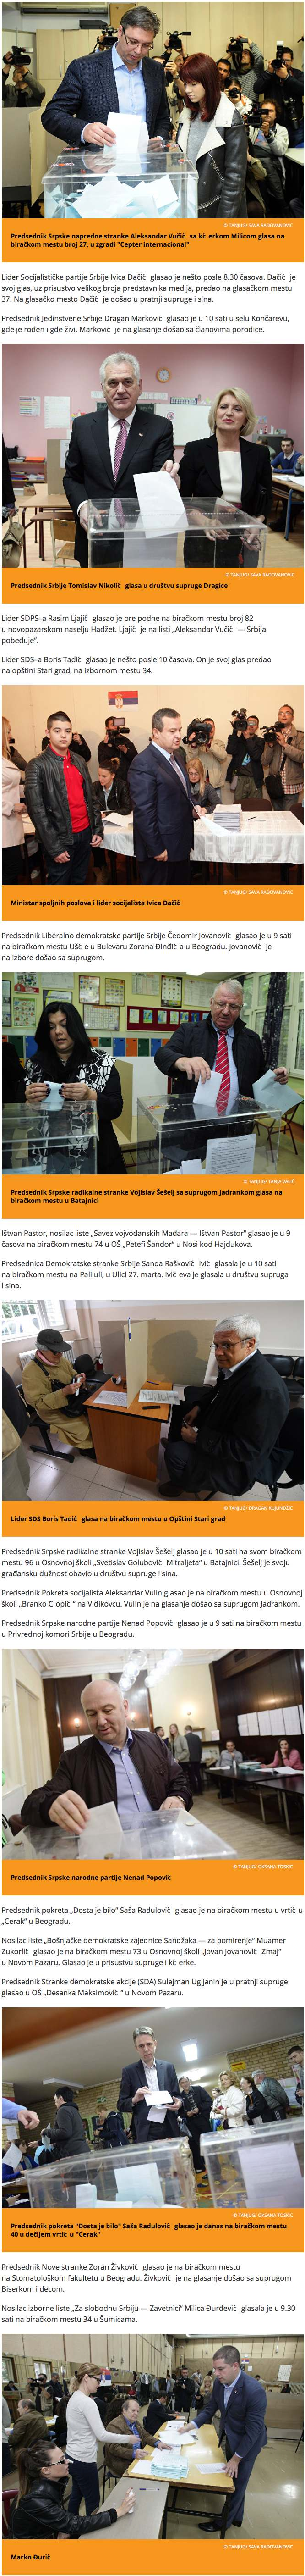 screenshot-rs-lat sputniknews com 2016-04-24 18-09-34